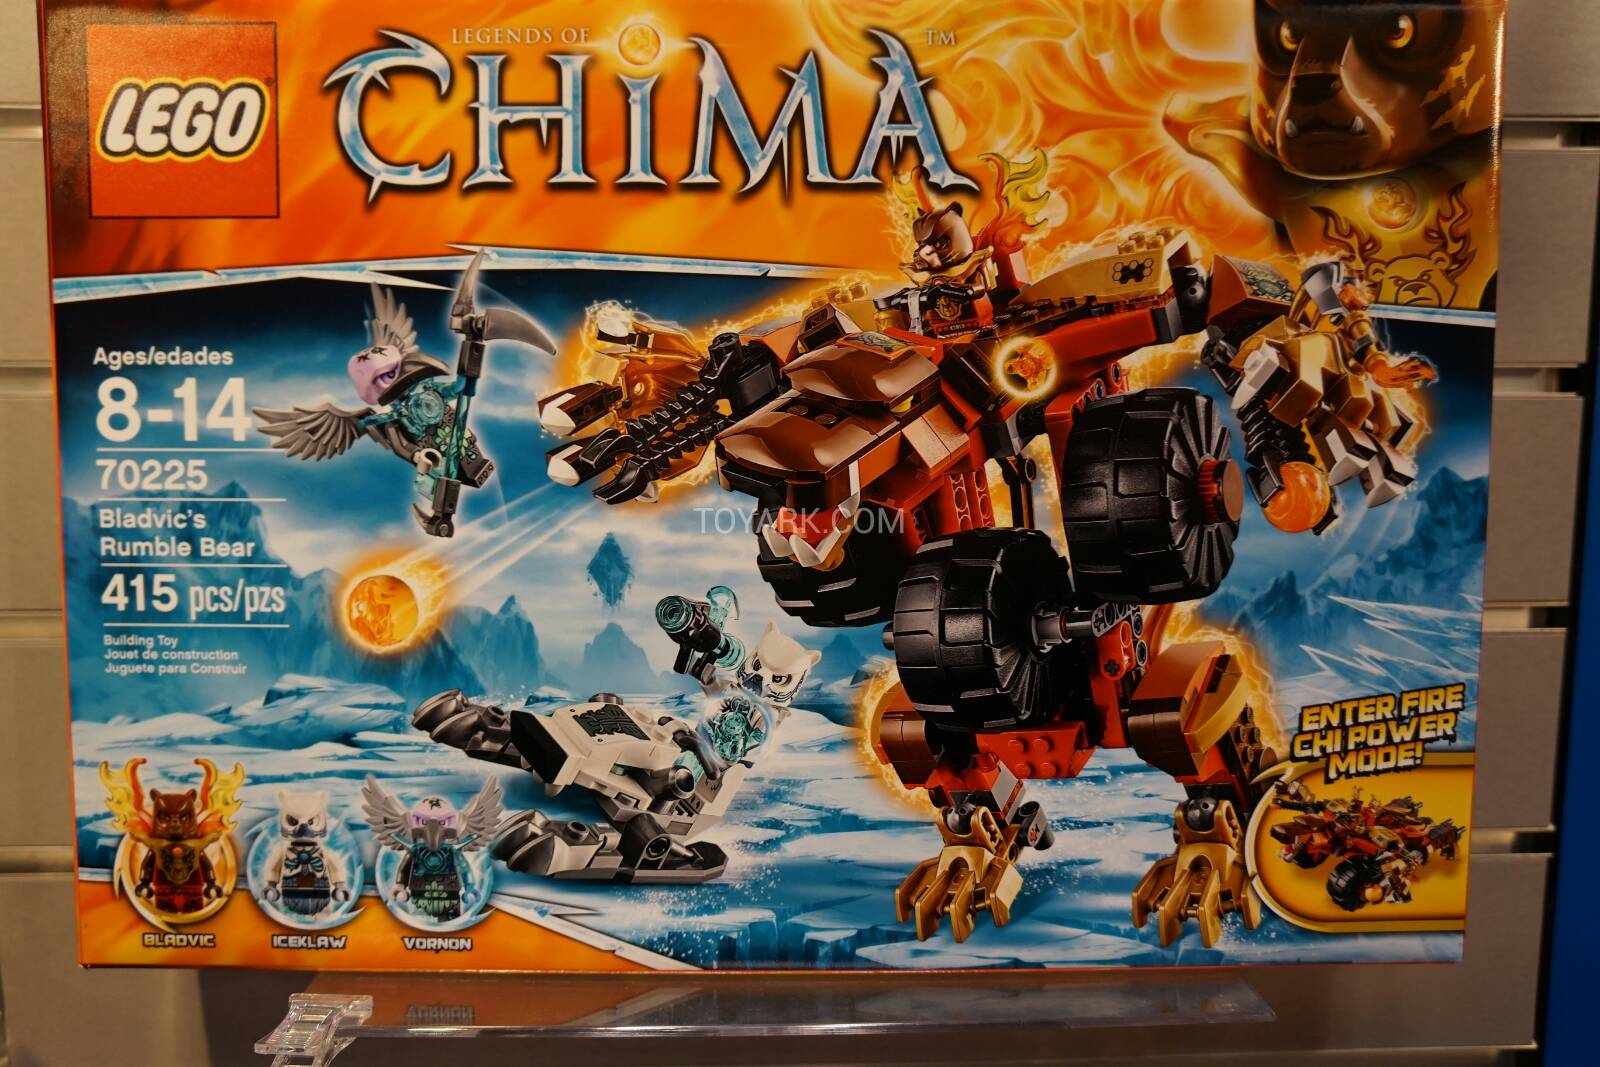 Toy-Fair-2015-LEGO-Chima-029.jpg